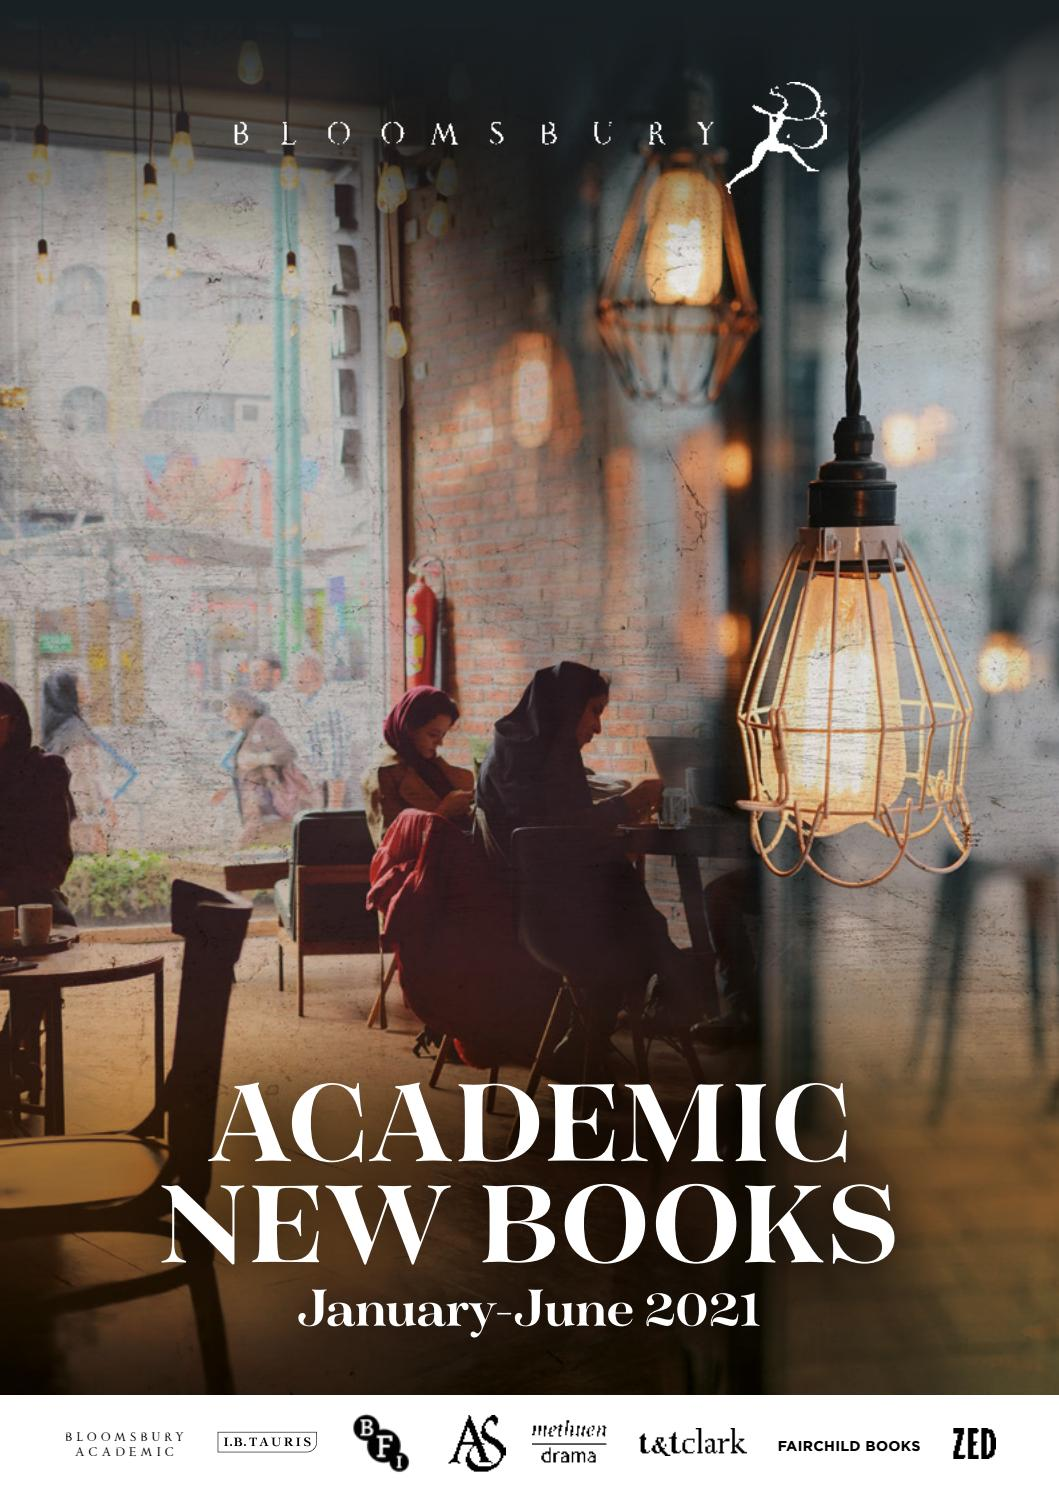 Academic New Books January-June 2021 by Bloomsbury Publishing - issuu